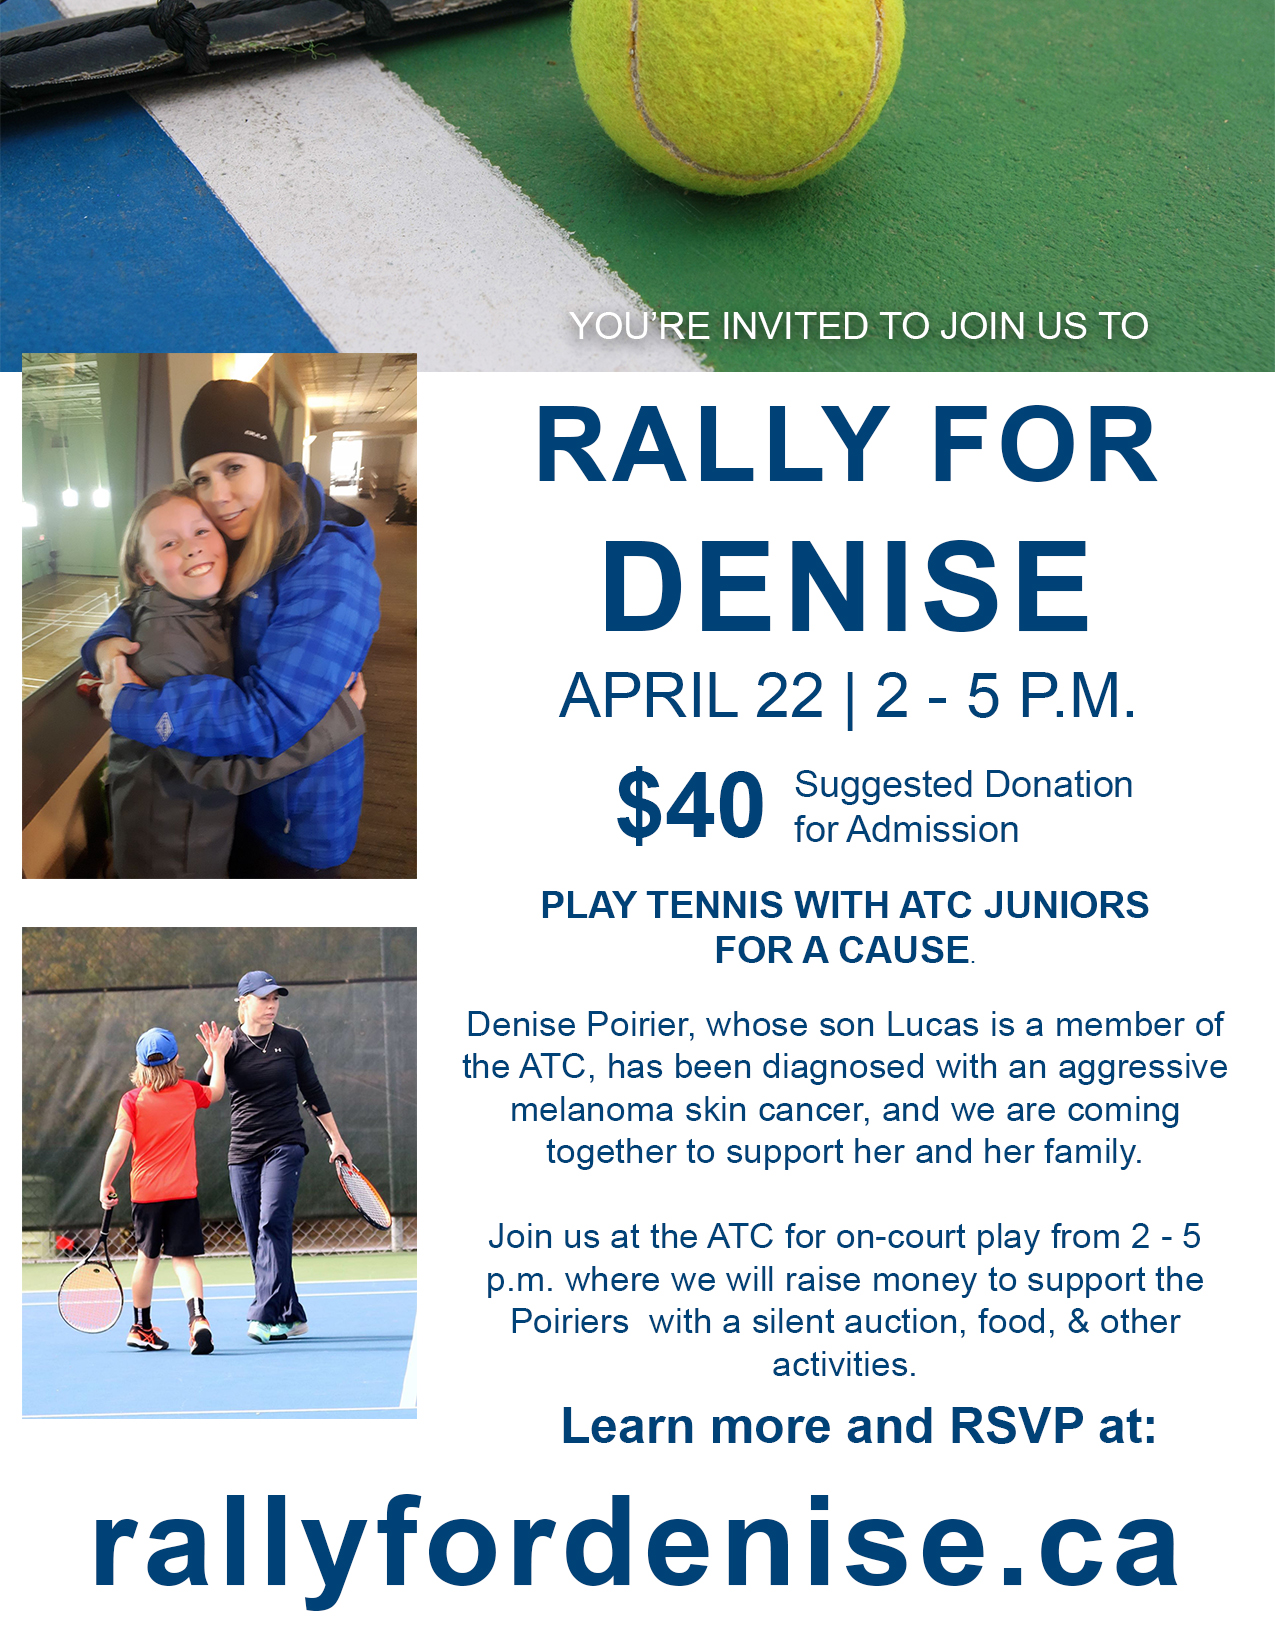 rally for denise